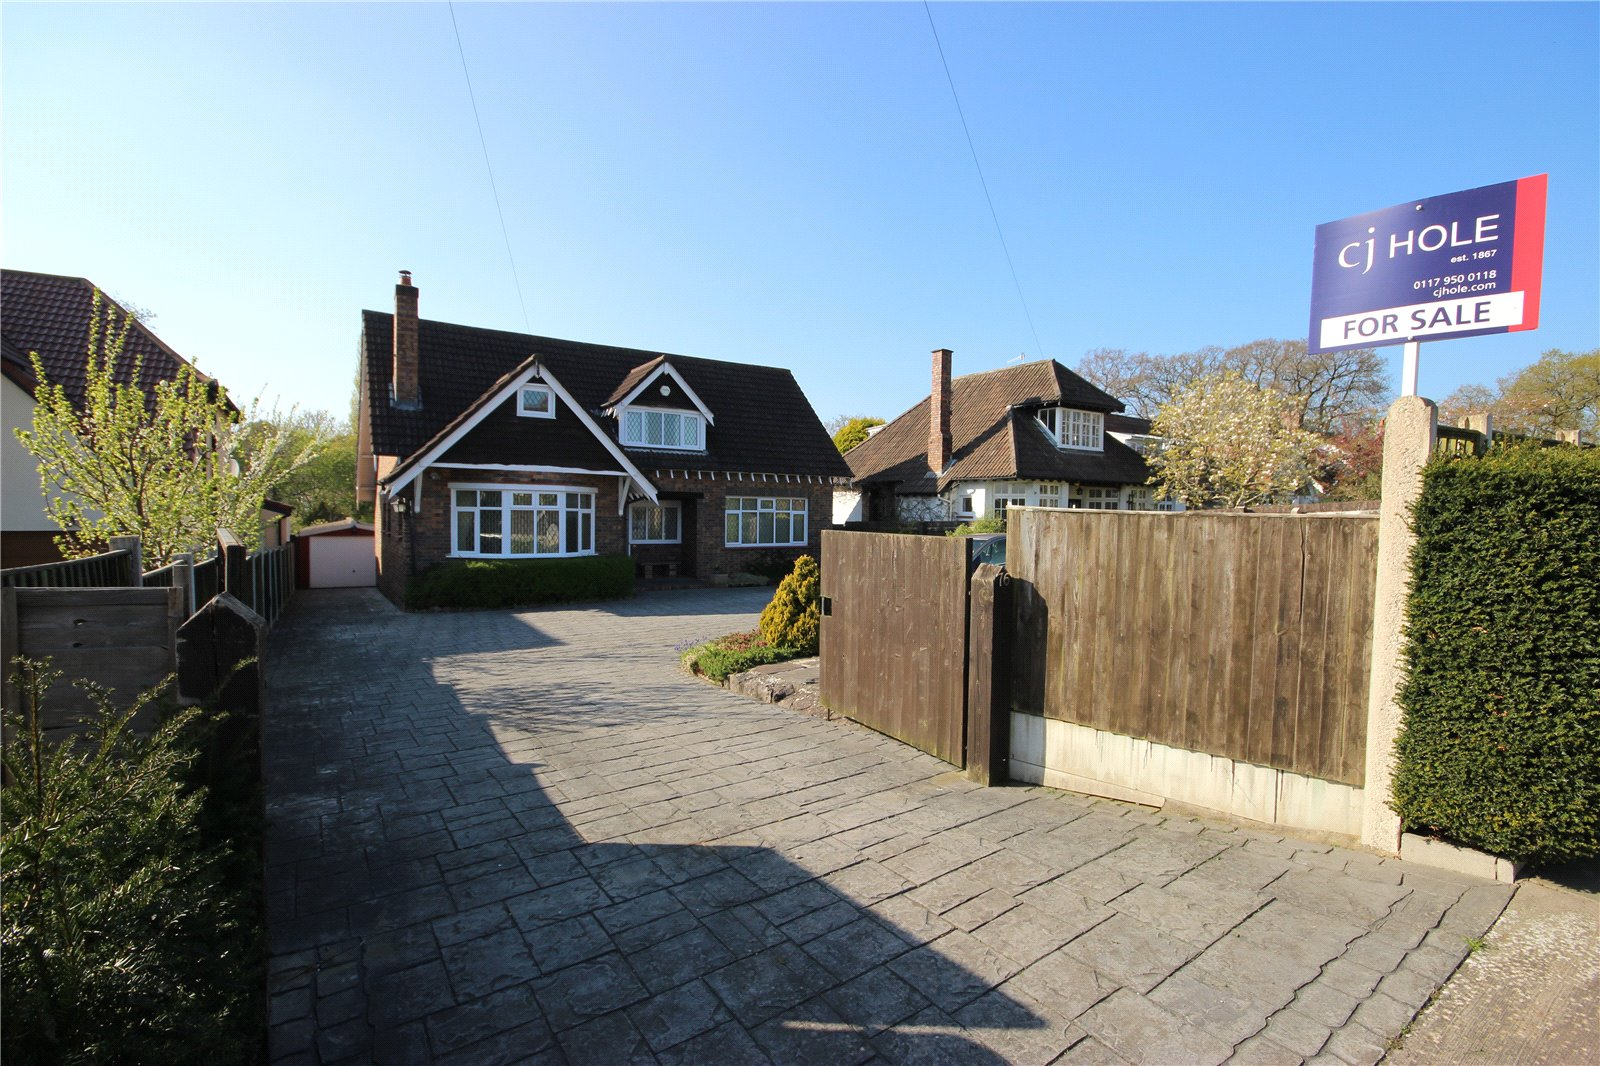 Cj Hole Henleaze 4 Bedroom House For Sale In Bell Barn